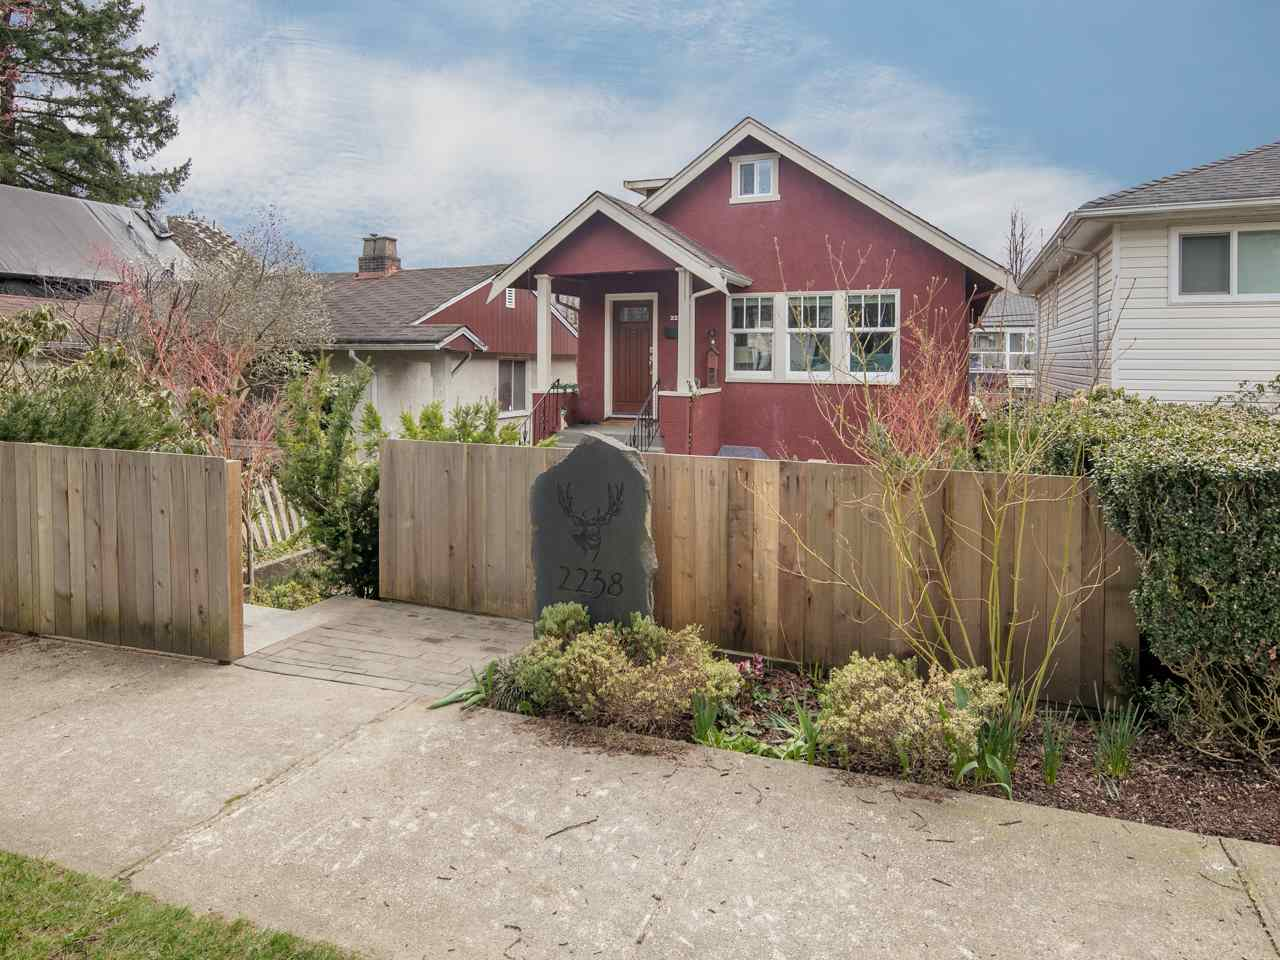 Main Photo: 2238 E 4TH Avenue in Vancouver: Grandview VE House for sale (Vancouver East)  : MLS(r) # R2151917